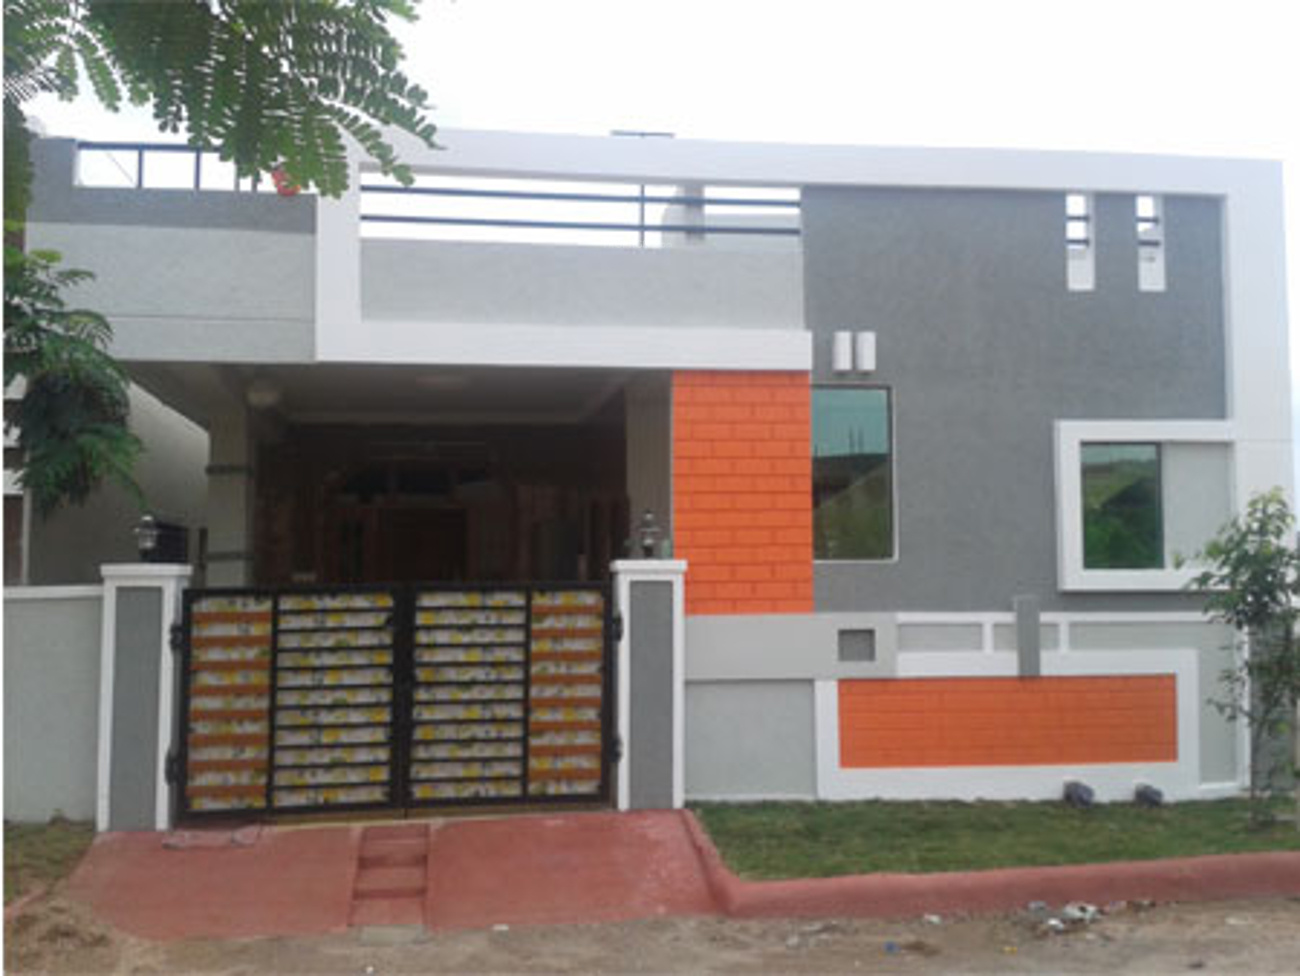 VRR Greenpark Enclave by VRR Constructions in Dammaiguda, Hyderabad ...